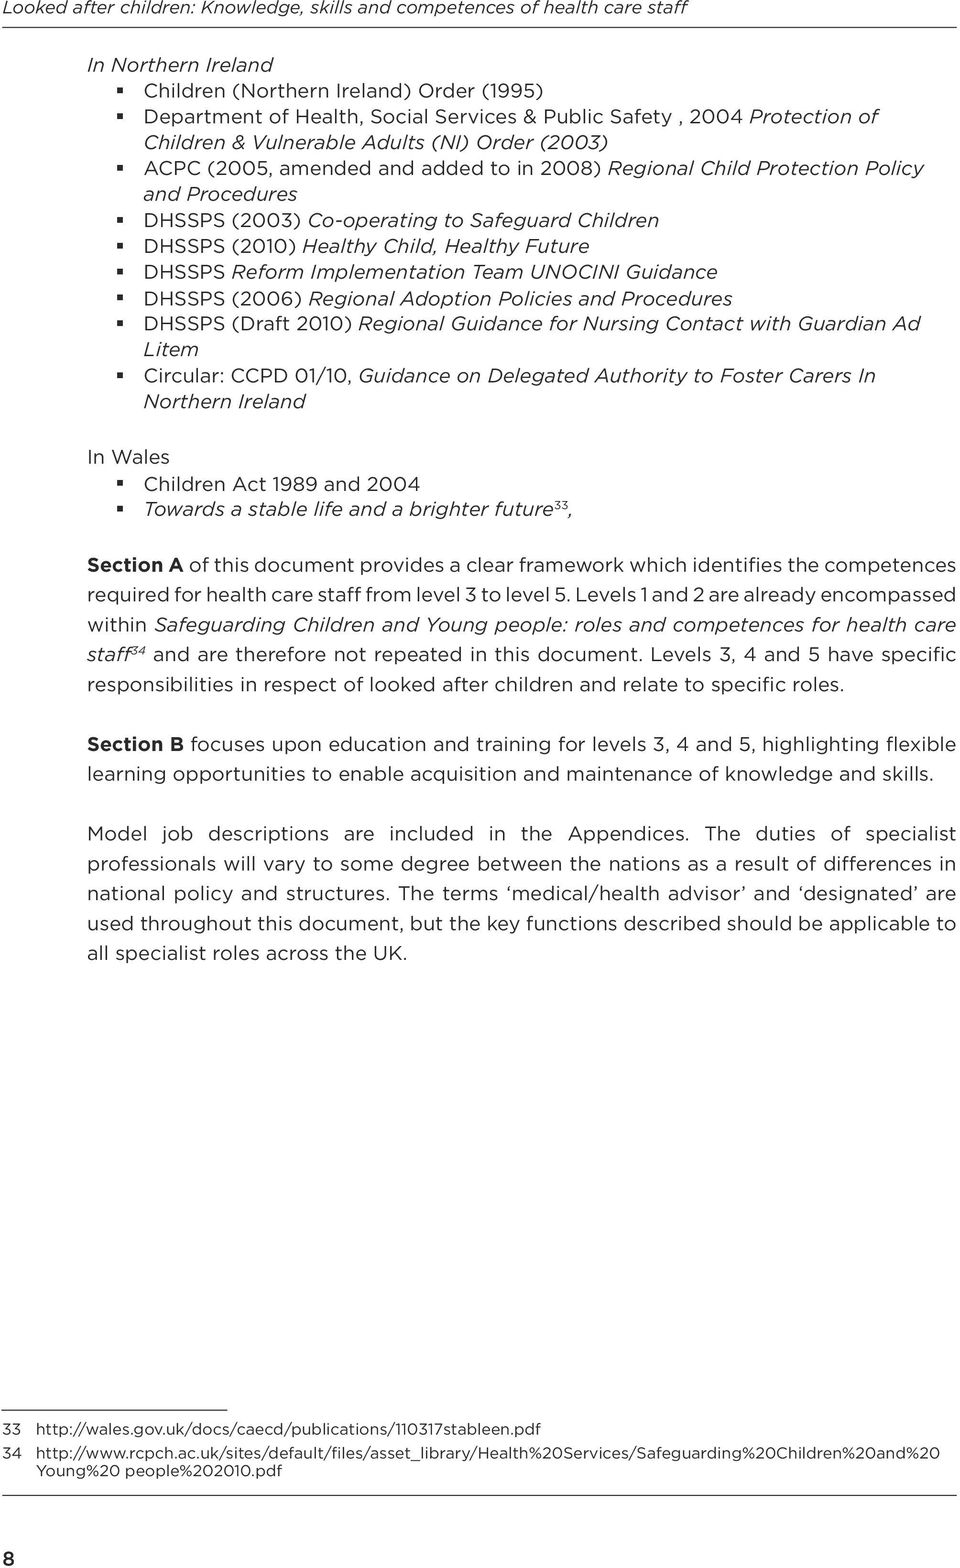 Team UNOCINI Guidance DHSSPS (2006) Regional Adoption Policies and Procedures DHSSPS (Draft 2010) Regional Guidance for Nursing Contact with Guardian Ad Litem Circular: CCPD 01/10, Guidance on